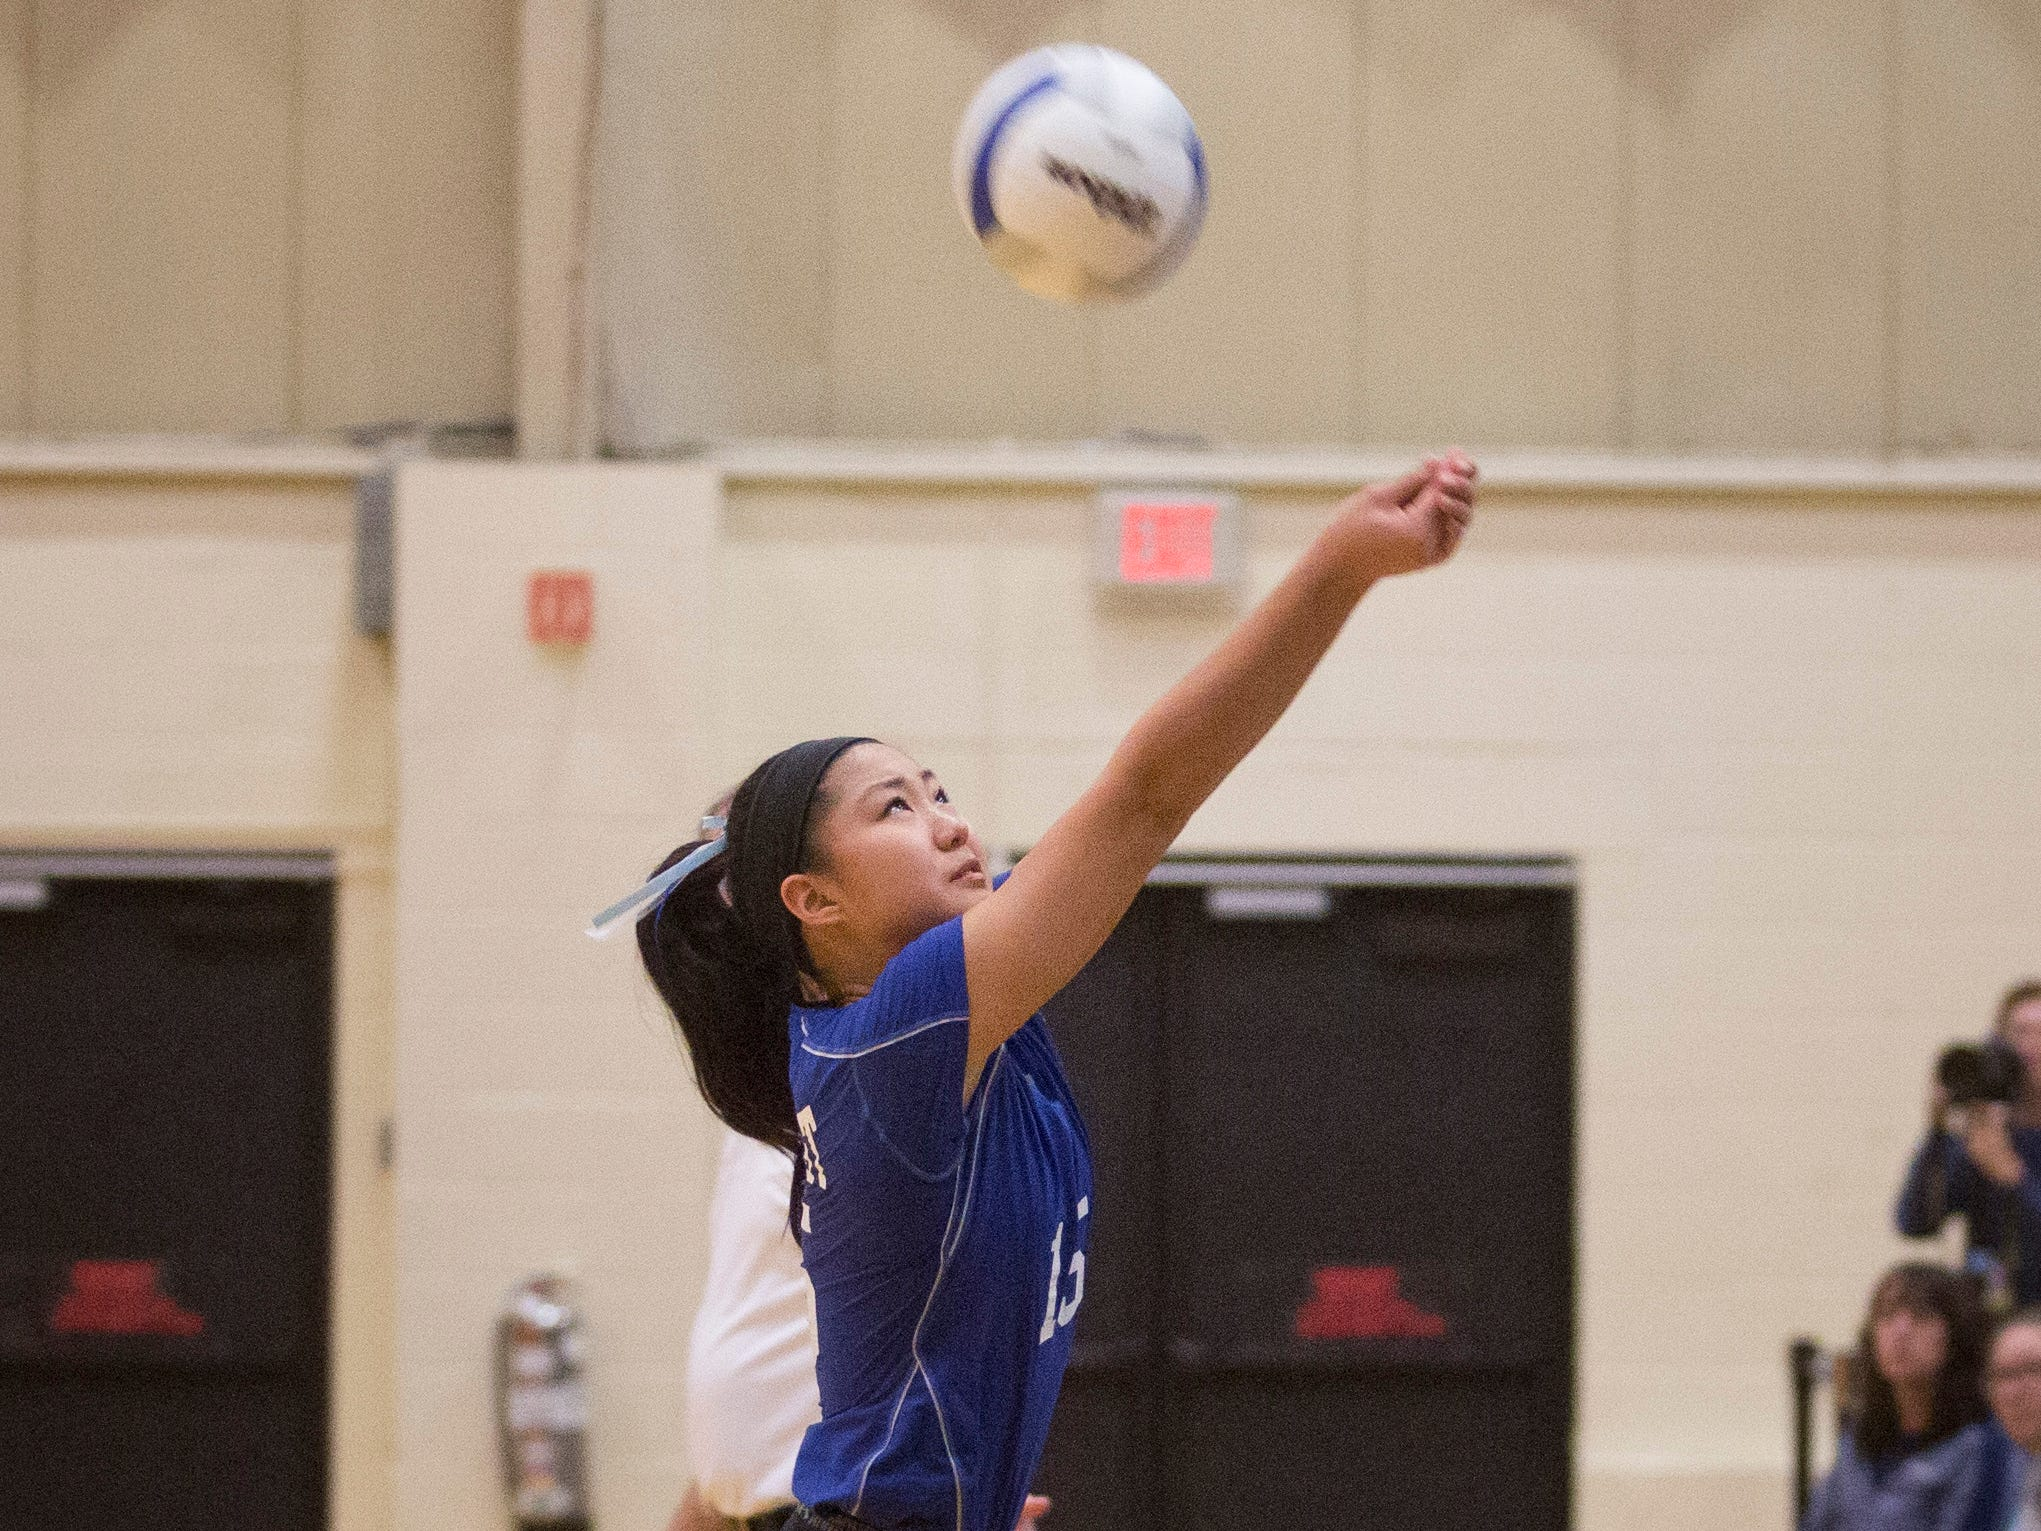 Northern Valley Regional at Demarest setter Liz Park (15) tries to save a volley during the NJSIAA volleyball group two finals at William Paterson Recreation Center. Demarest won 25-13, 25-9.